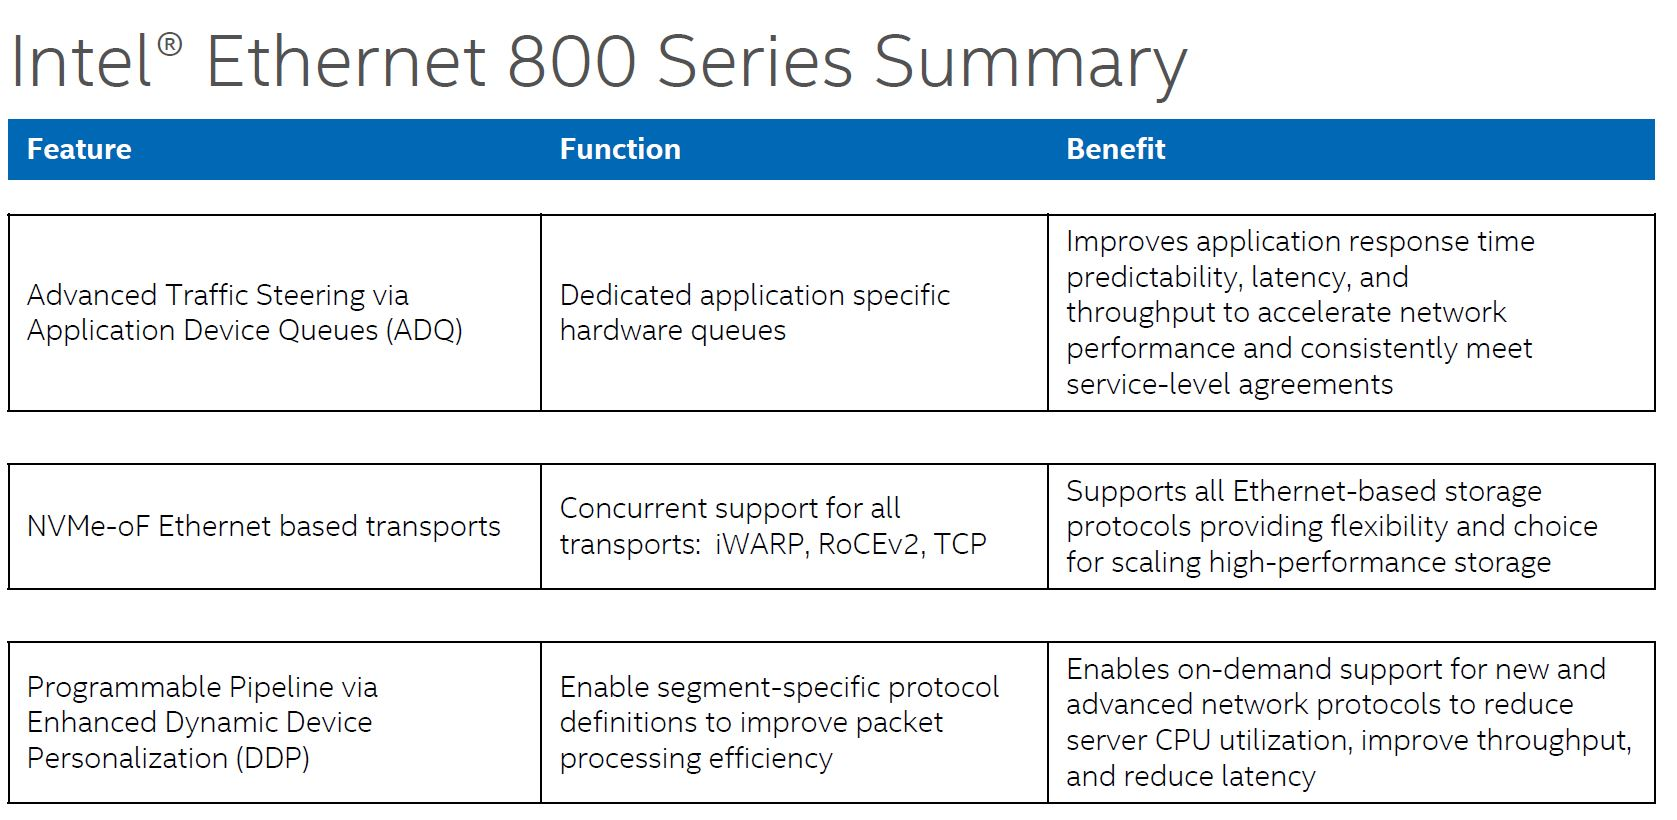 Intel 800 Series Feature Summary